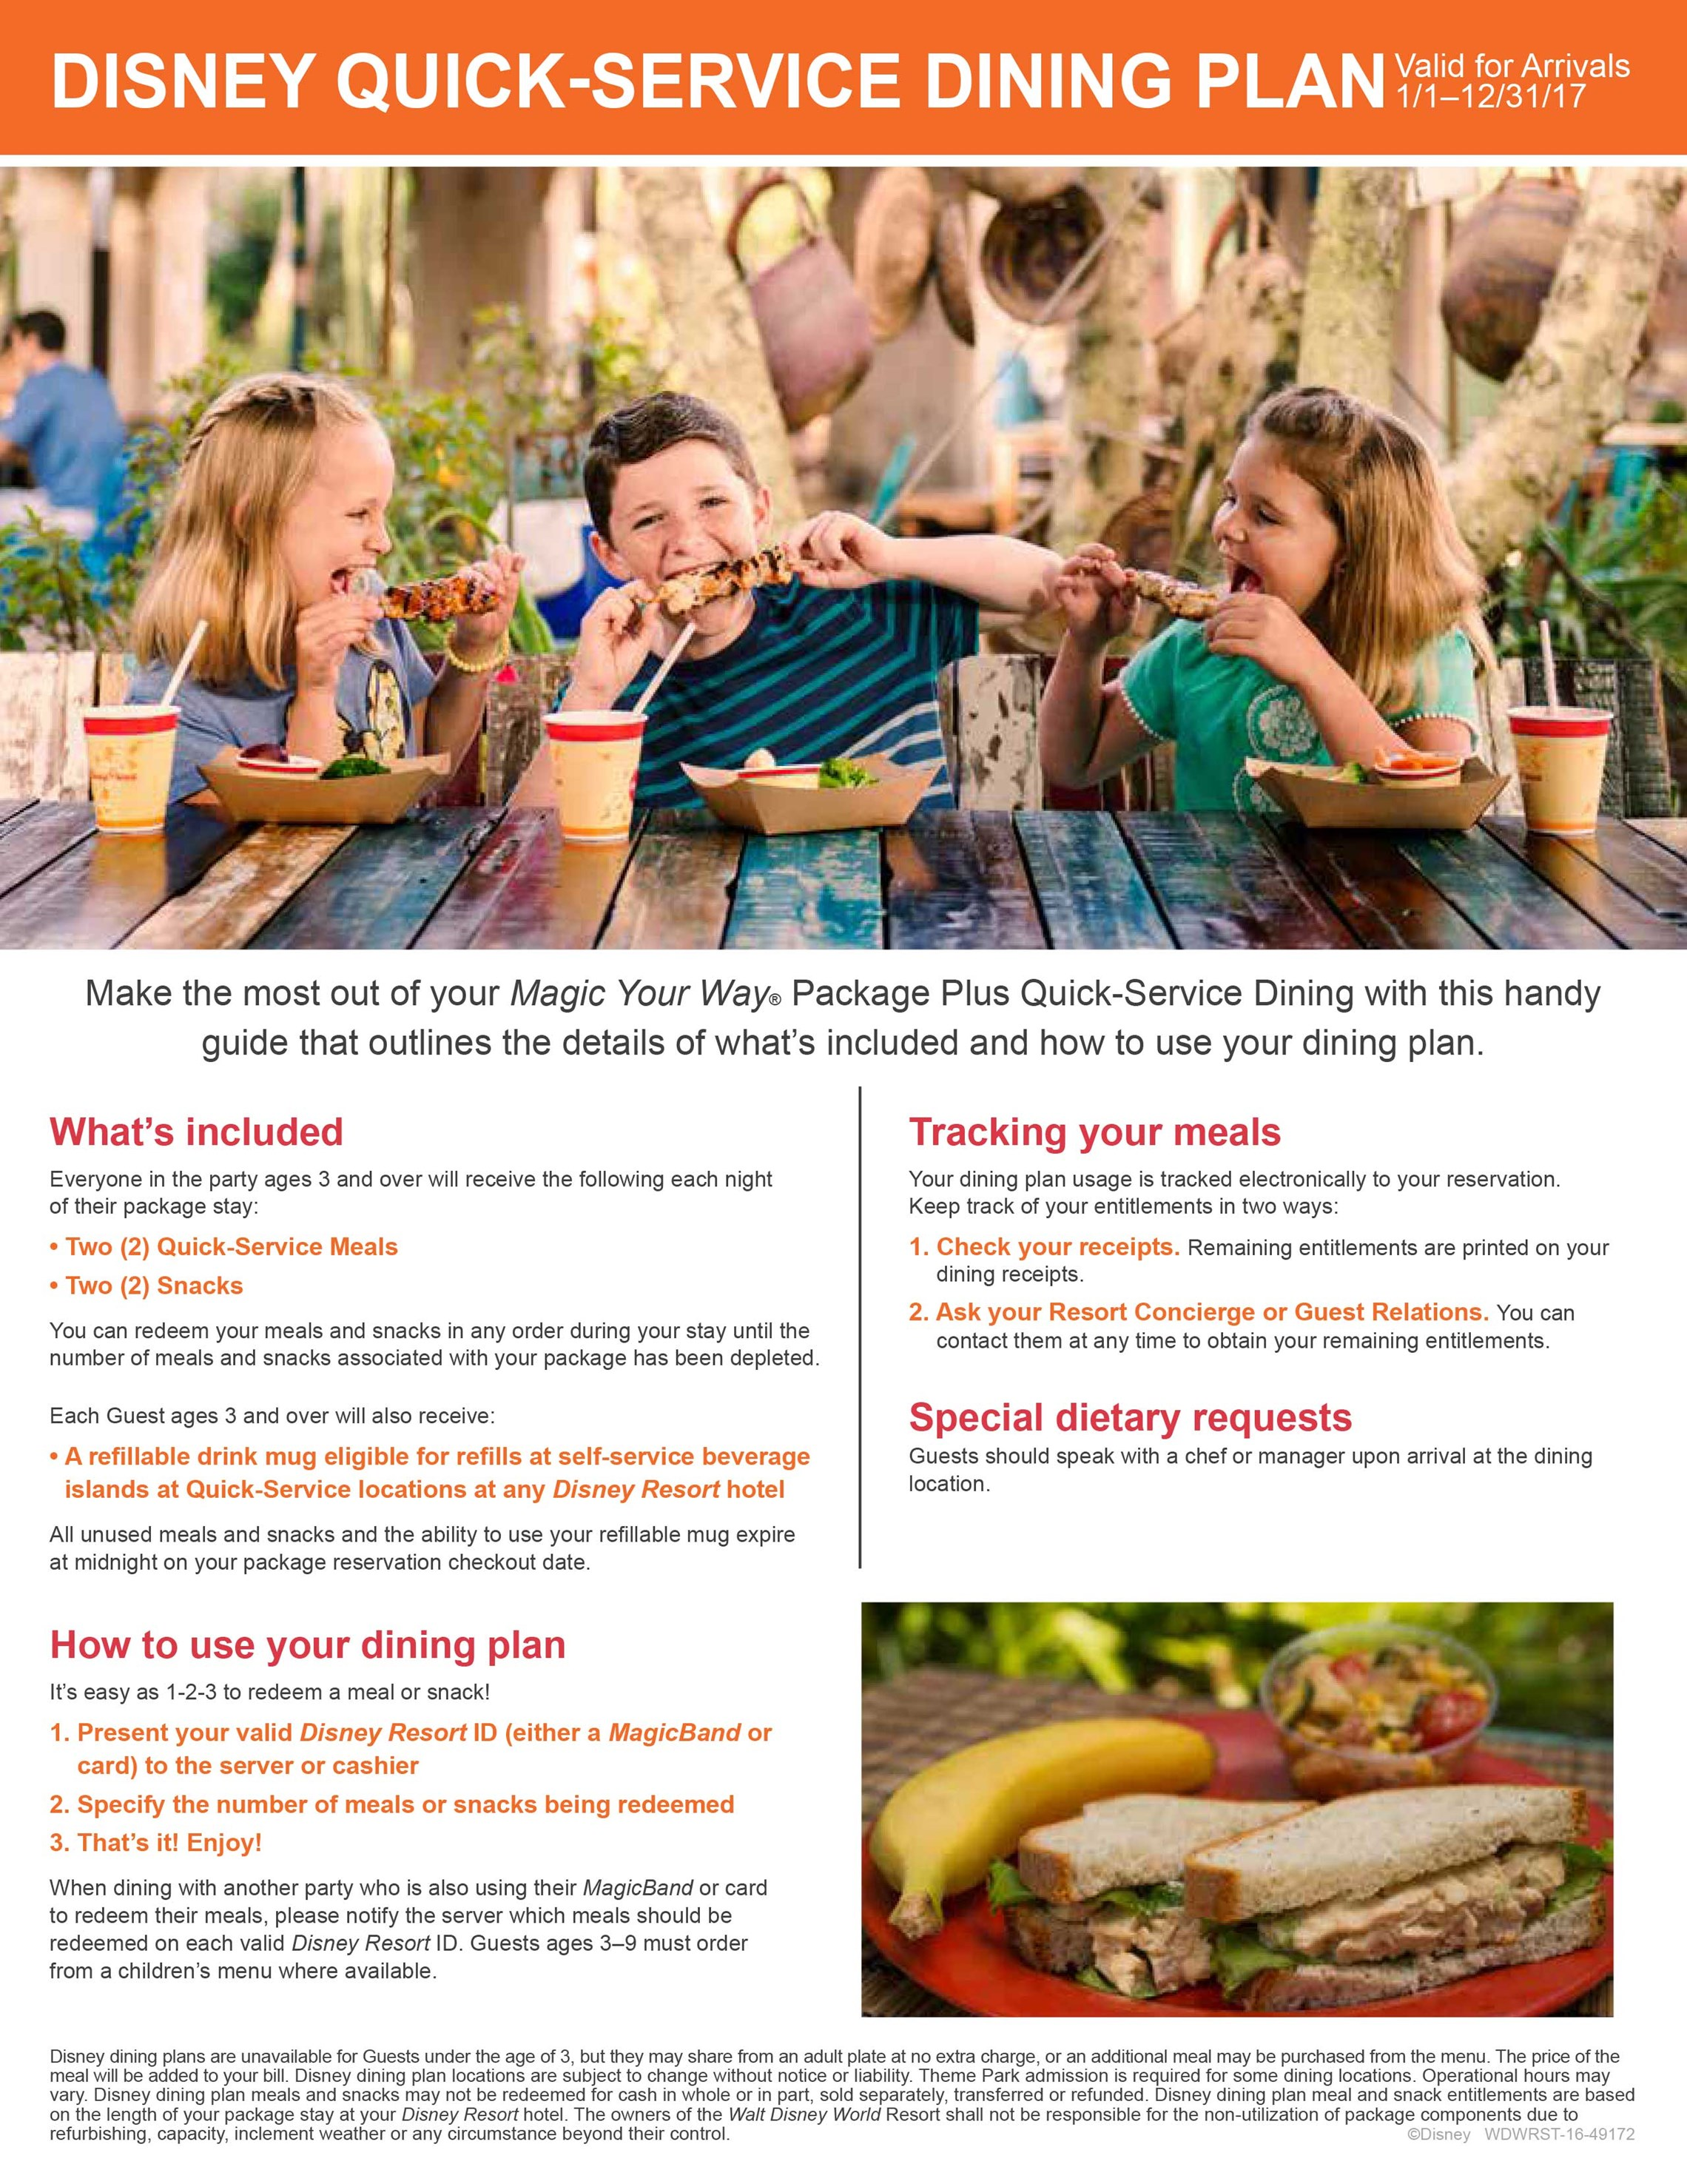 2017 Disney Dining Plan brochures